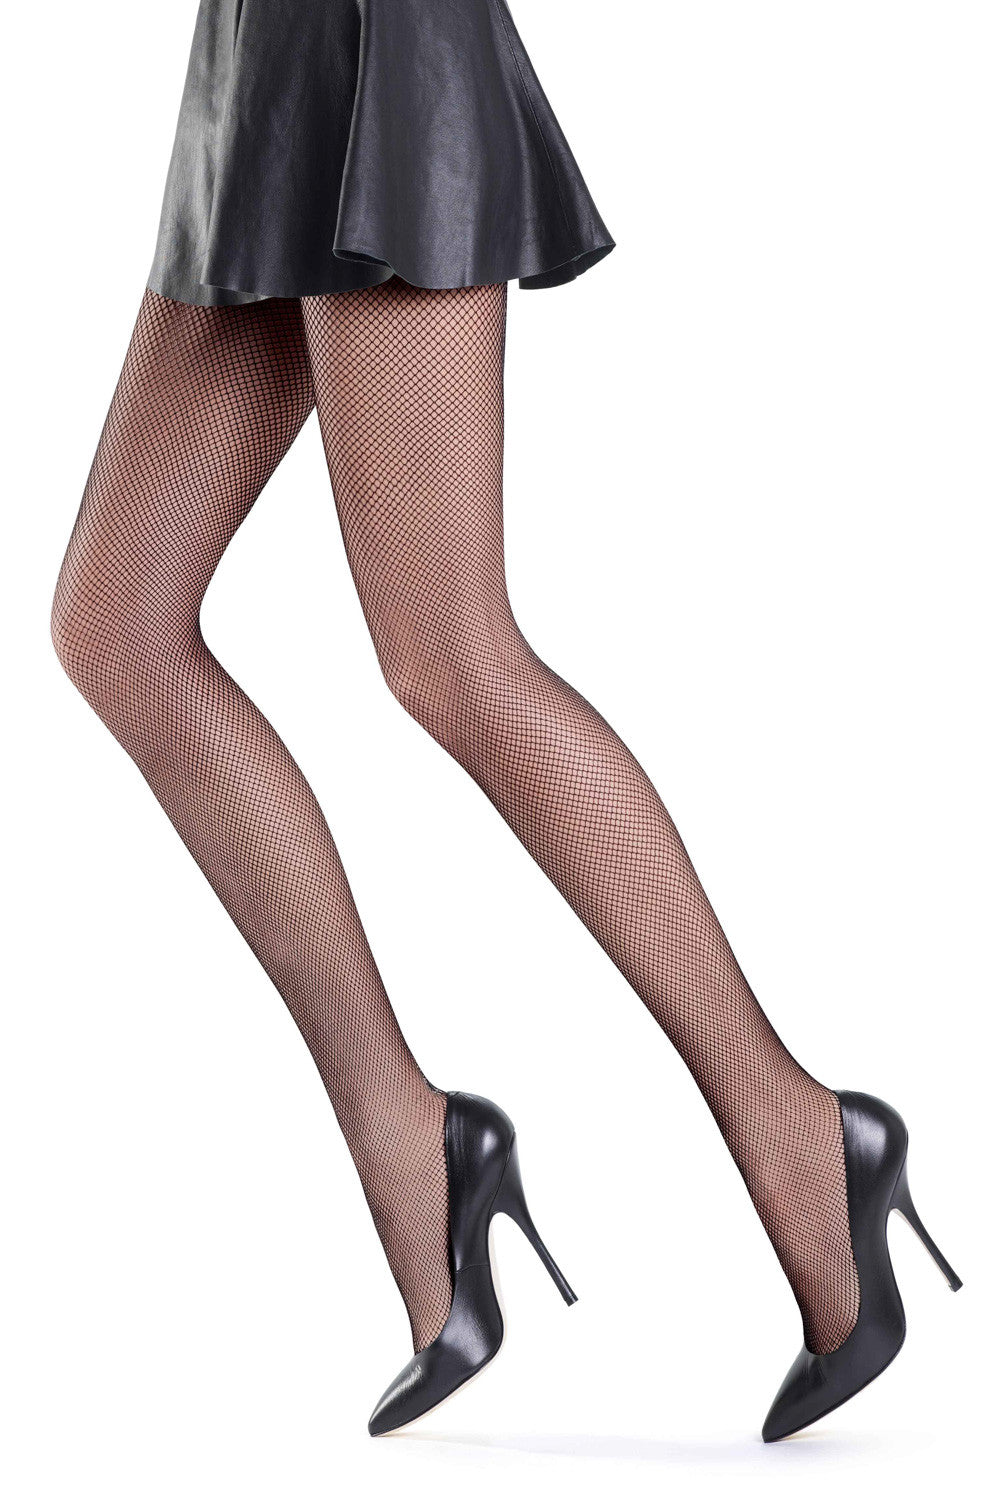 Oroblu Tricot Fishnet Tights - Mayfair Stockings